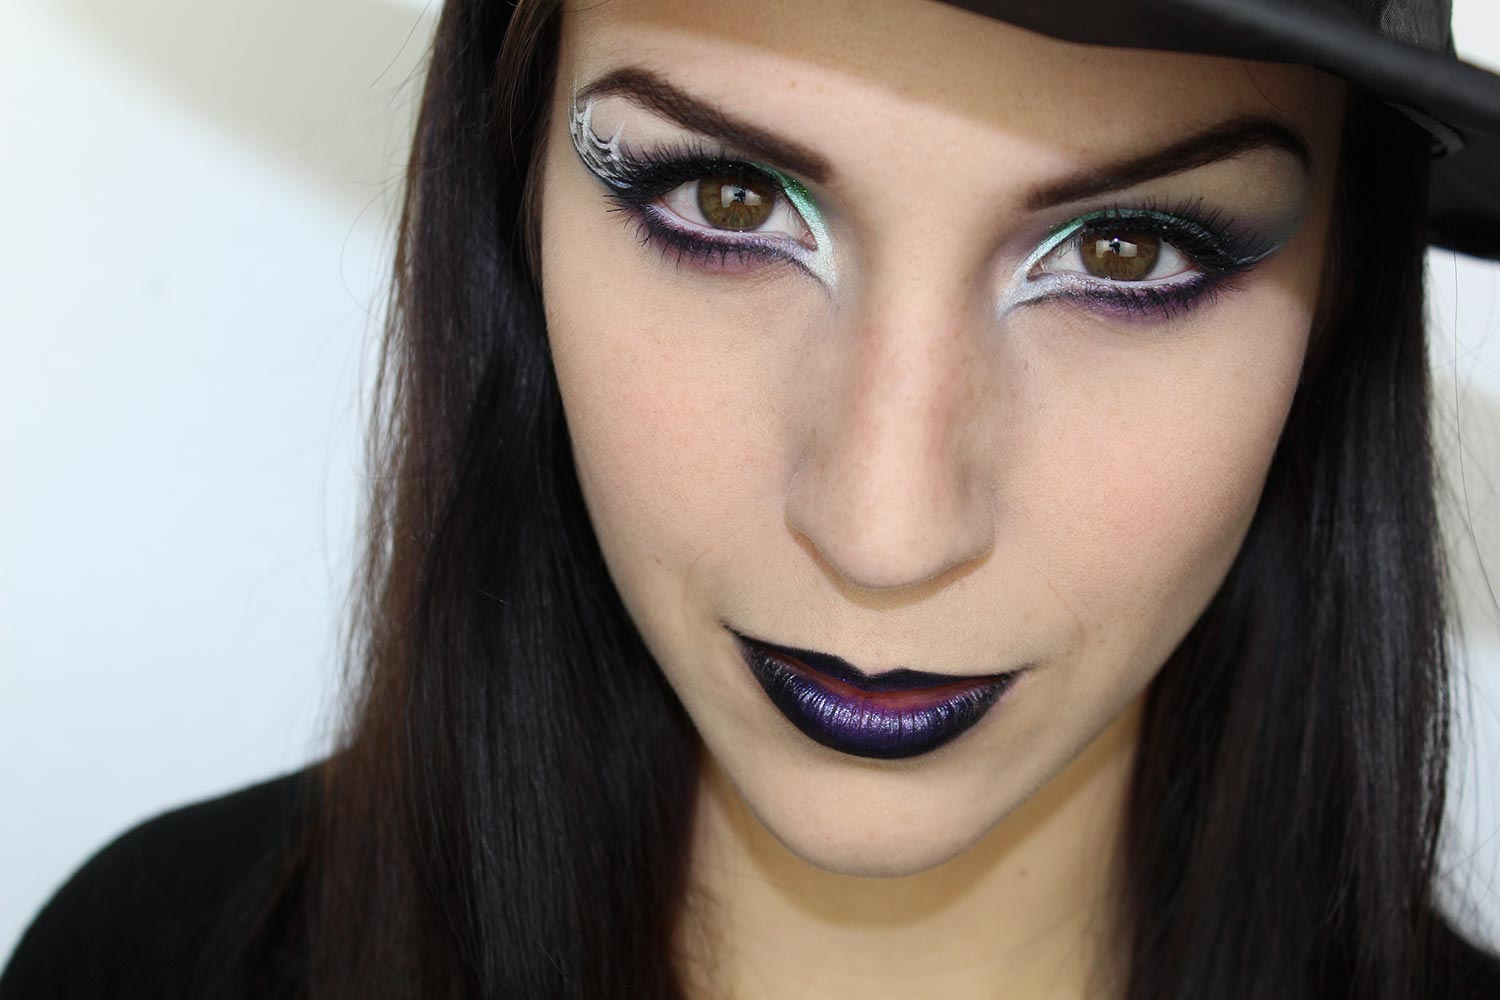 Maquillage d 39 halloween sorci re glam maquillage cynthia Maquillage de diablesse facile a faire